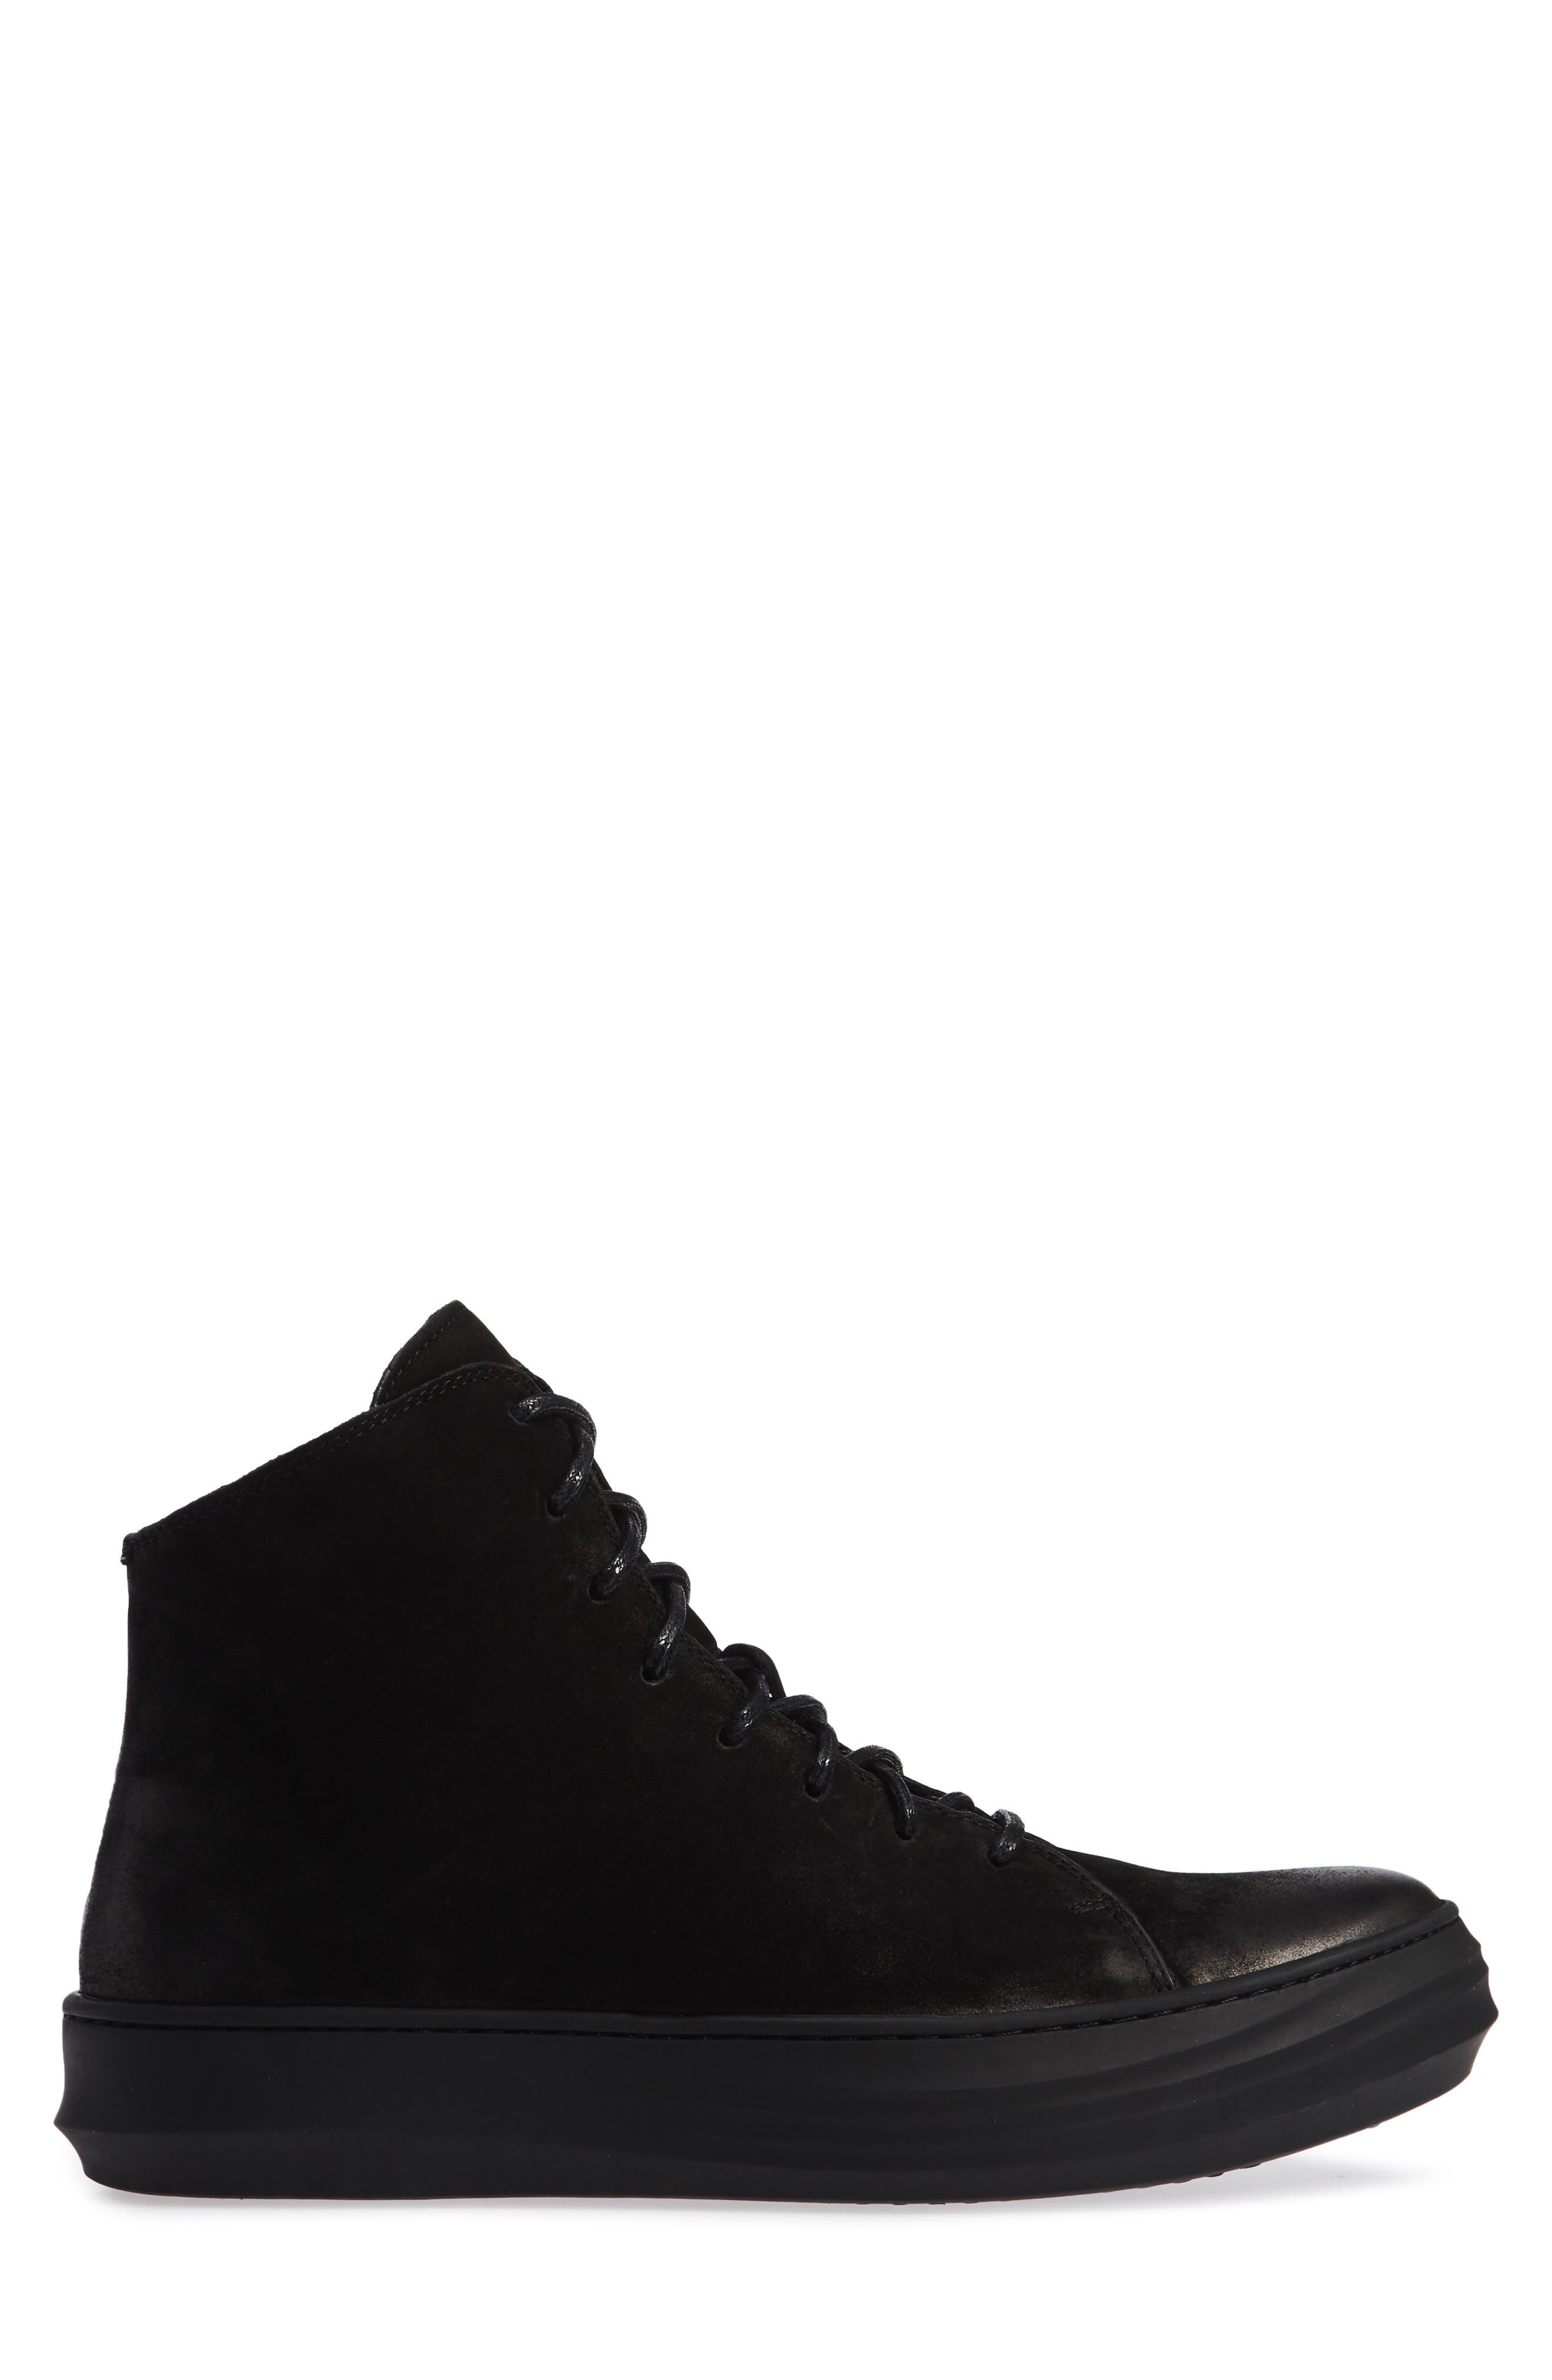 High Top Sneaker,                             Alternate thumbnail 3, color,                             BLACK LEATHER